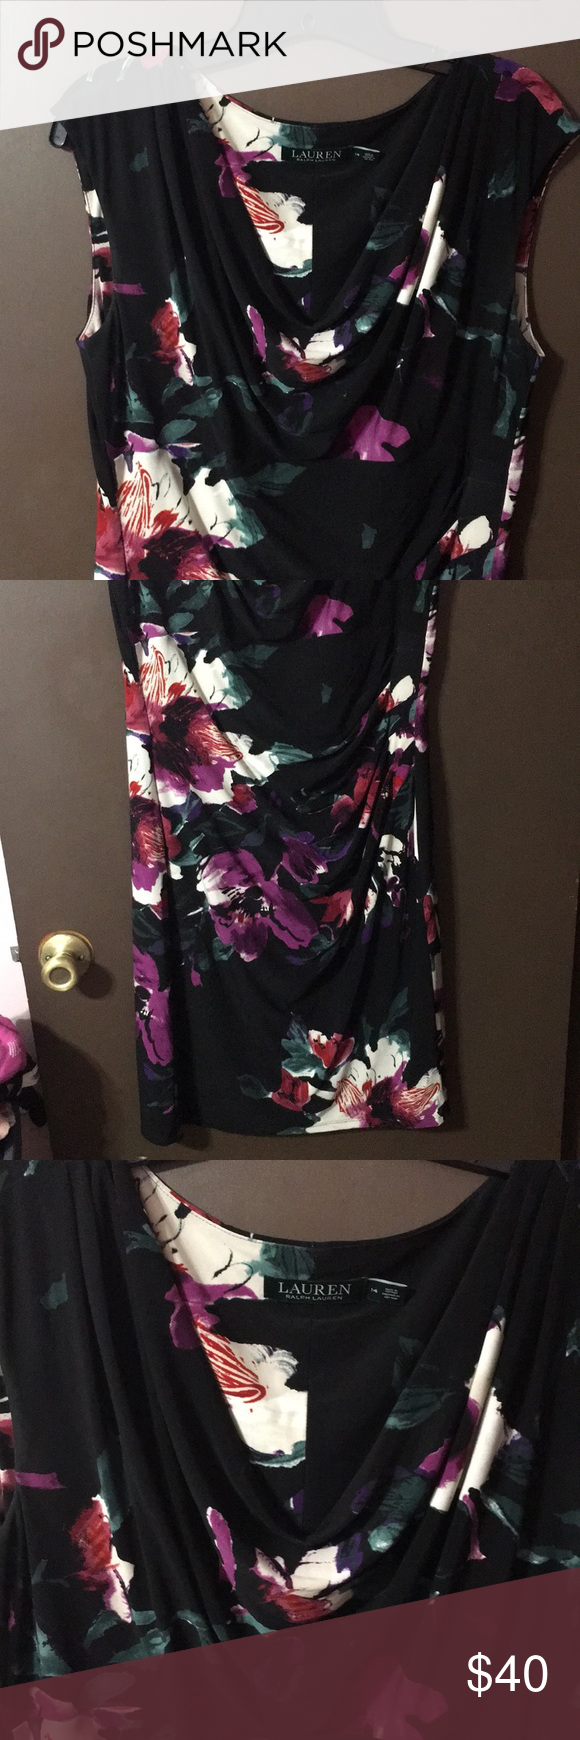 sale 🎉Ralph Lauren dress Beautiful Ralph Lauren dress. Drape neck with side rouching is very figure flattering. Black with floral print, below the knee, sleeveless, lined. Size 14 Ralph Lauren Dresses